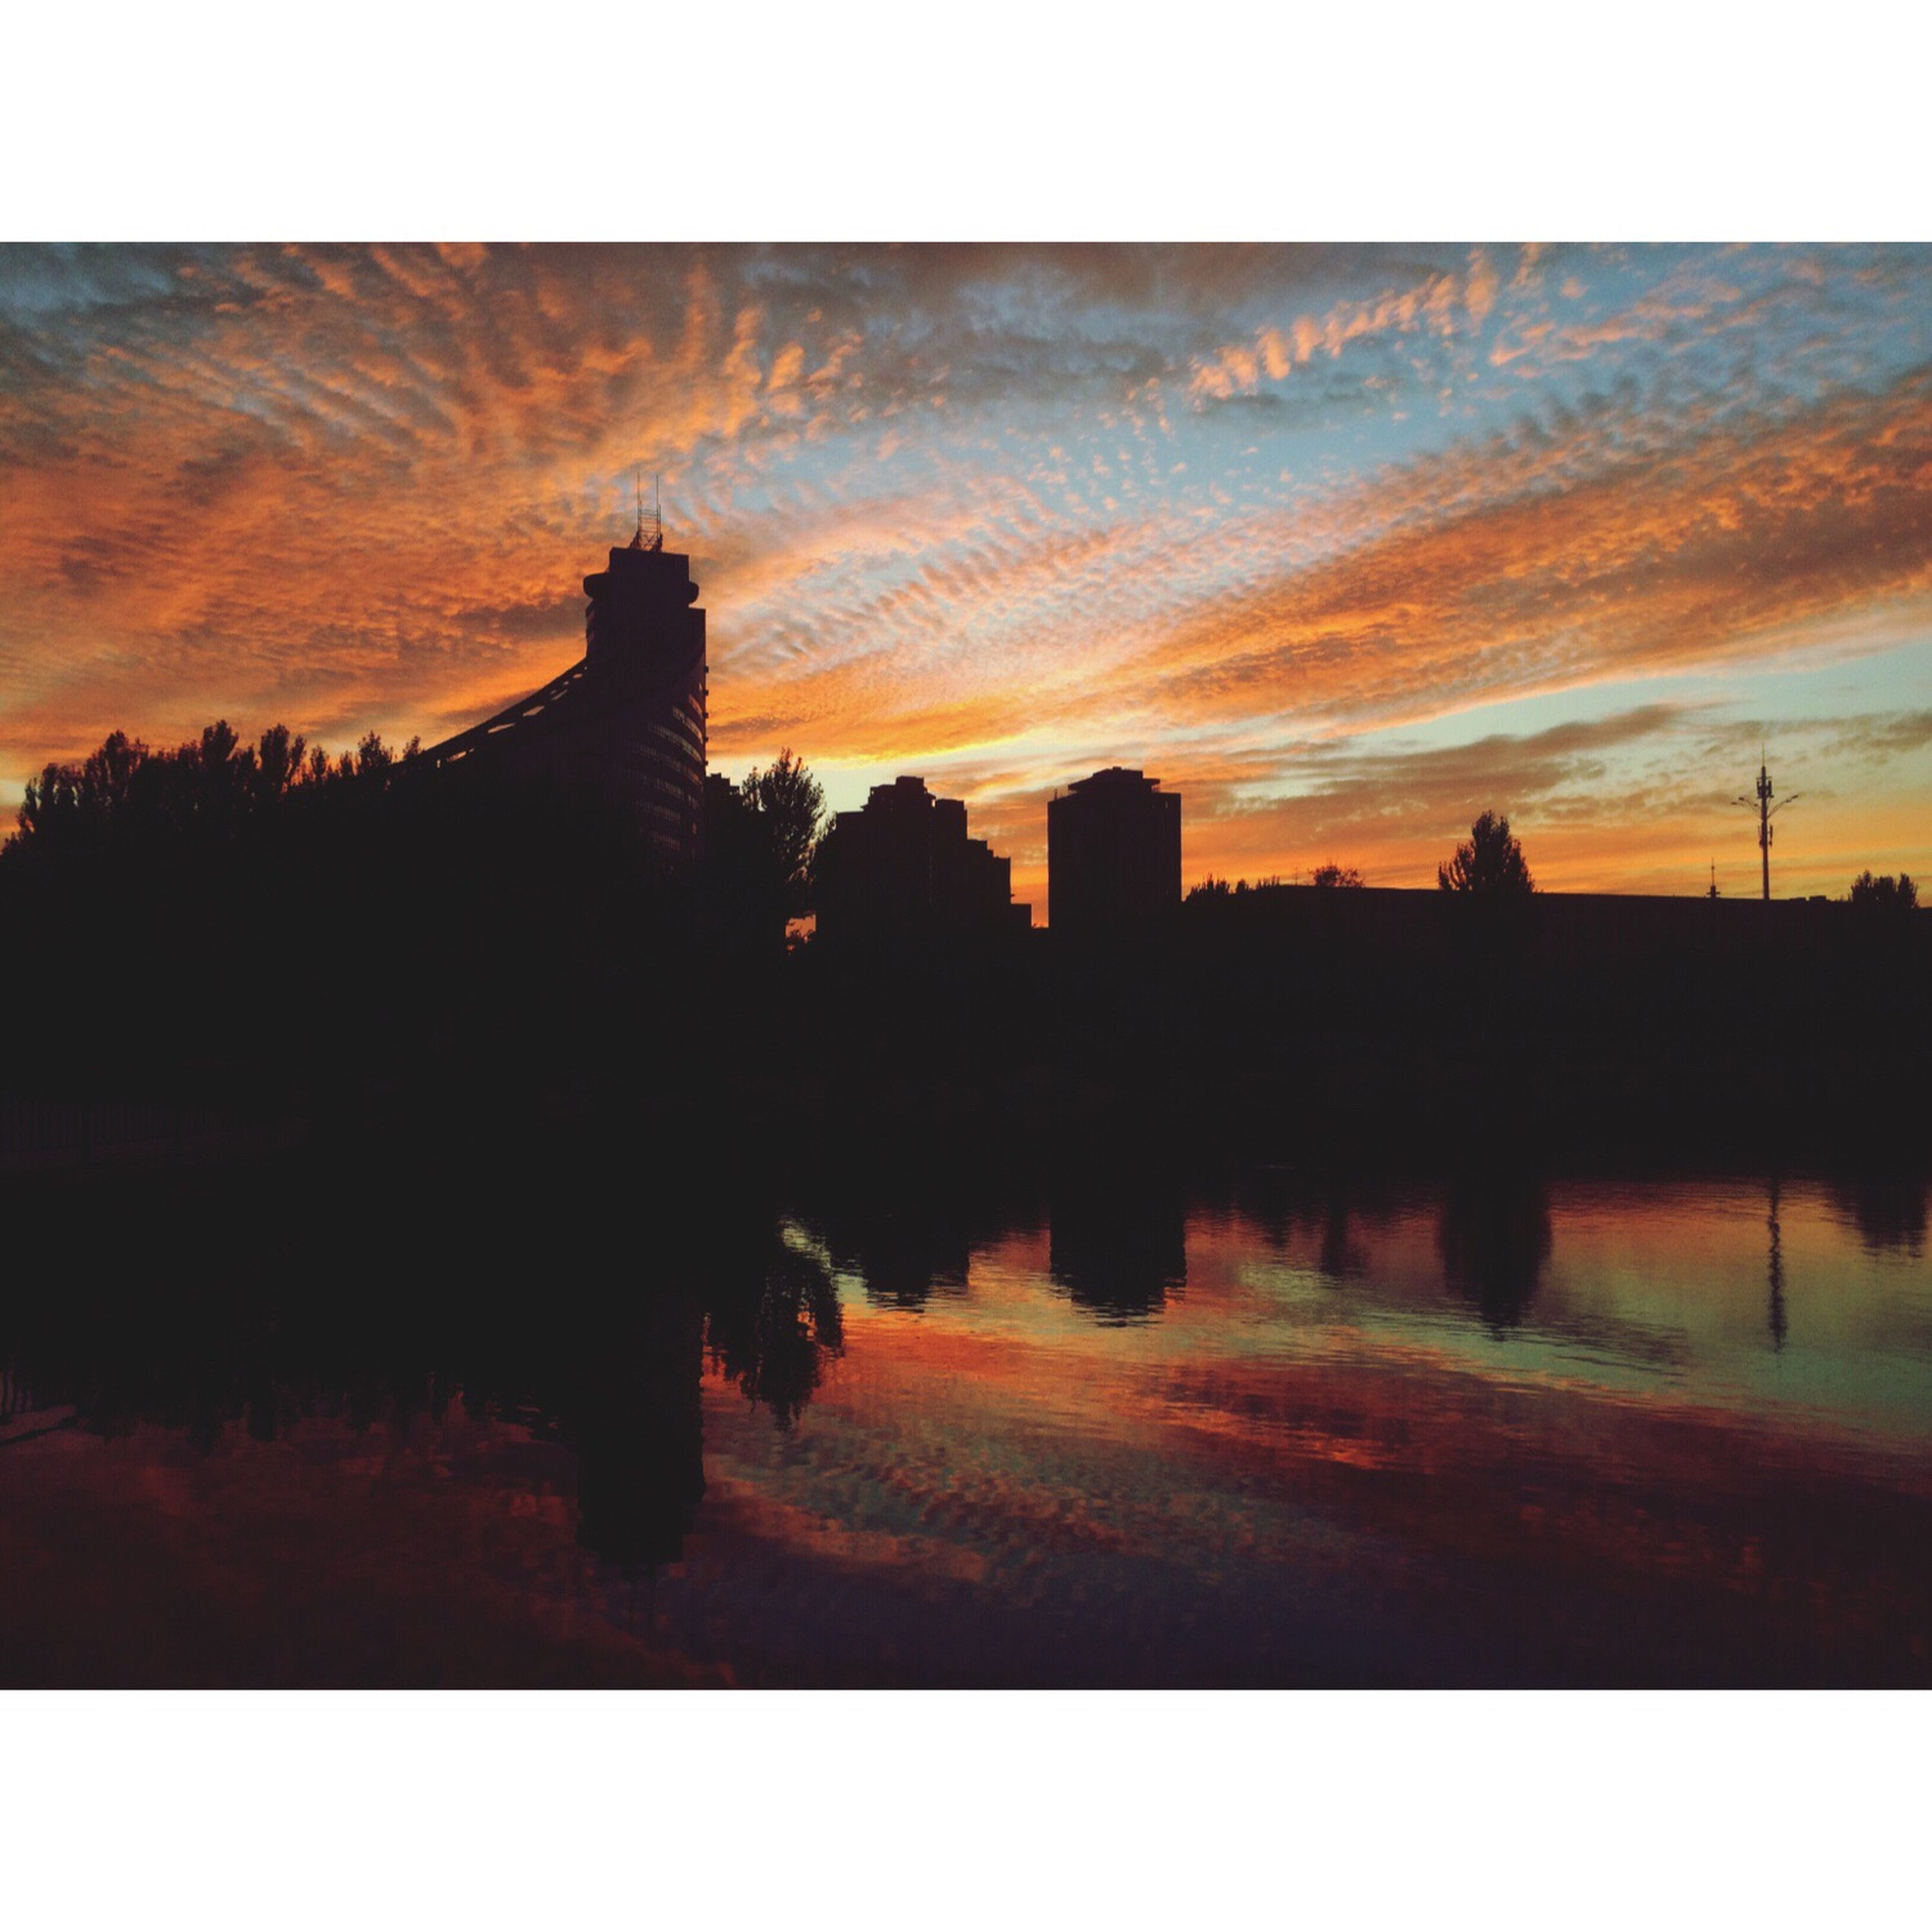 sunset, silhouette, water, architecture, lake, built structure, building exterior, sky, auto post production filter, reflection, orange color, cloud - sky, scenics, tranquility, tranquil scene, cloud, outdoors, growth, nature, beauty in nature, standing water, moody sky, dramatic sky, no people, cloudy